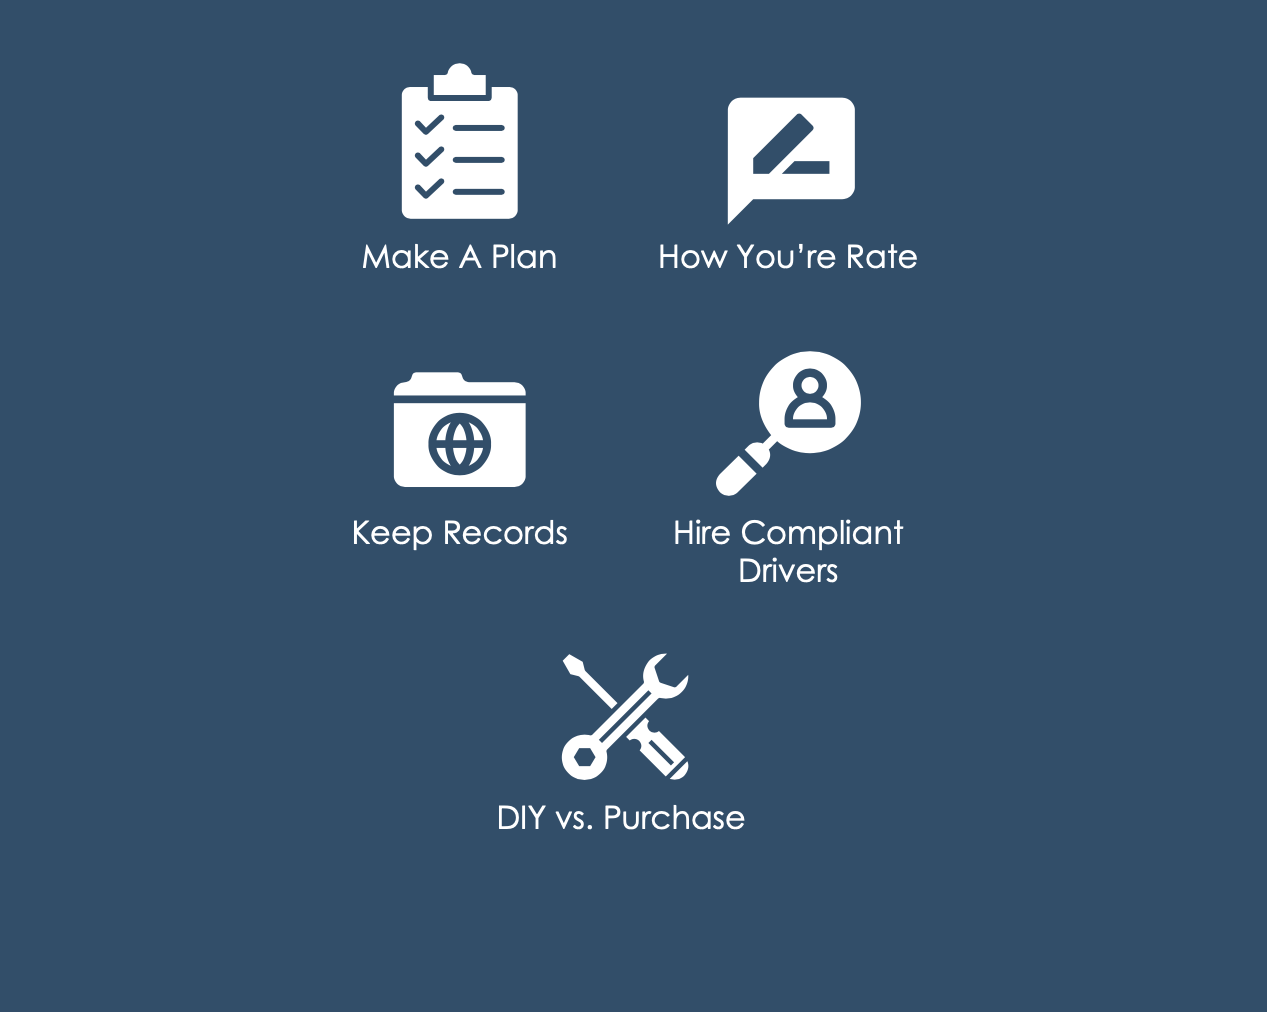 Icons for Make a Plan, How You're Rate, Keep Records, Hire Compliant Drivers, DIY versus Purchase